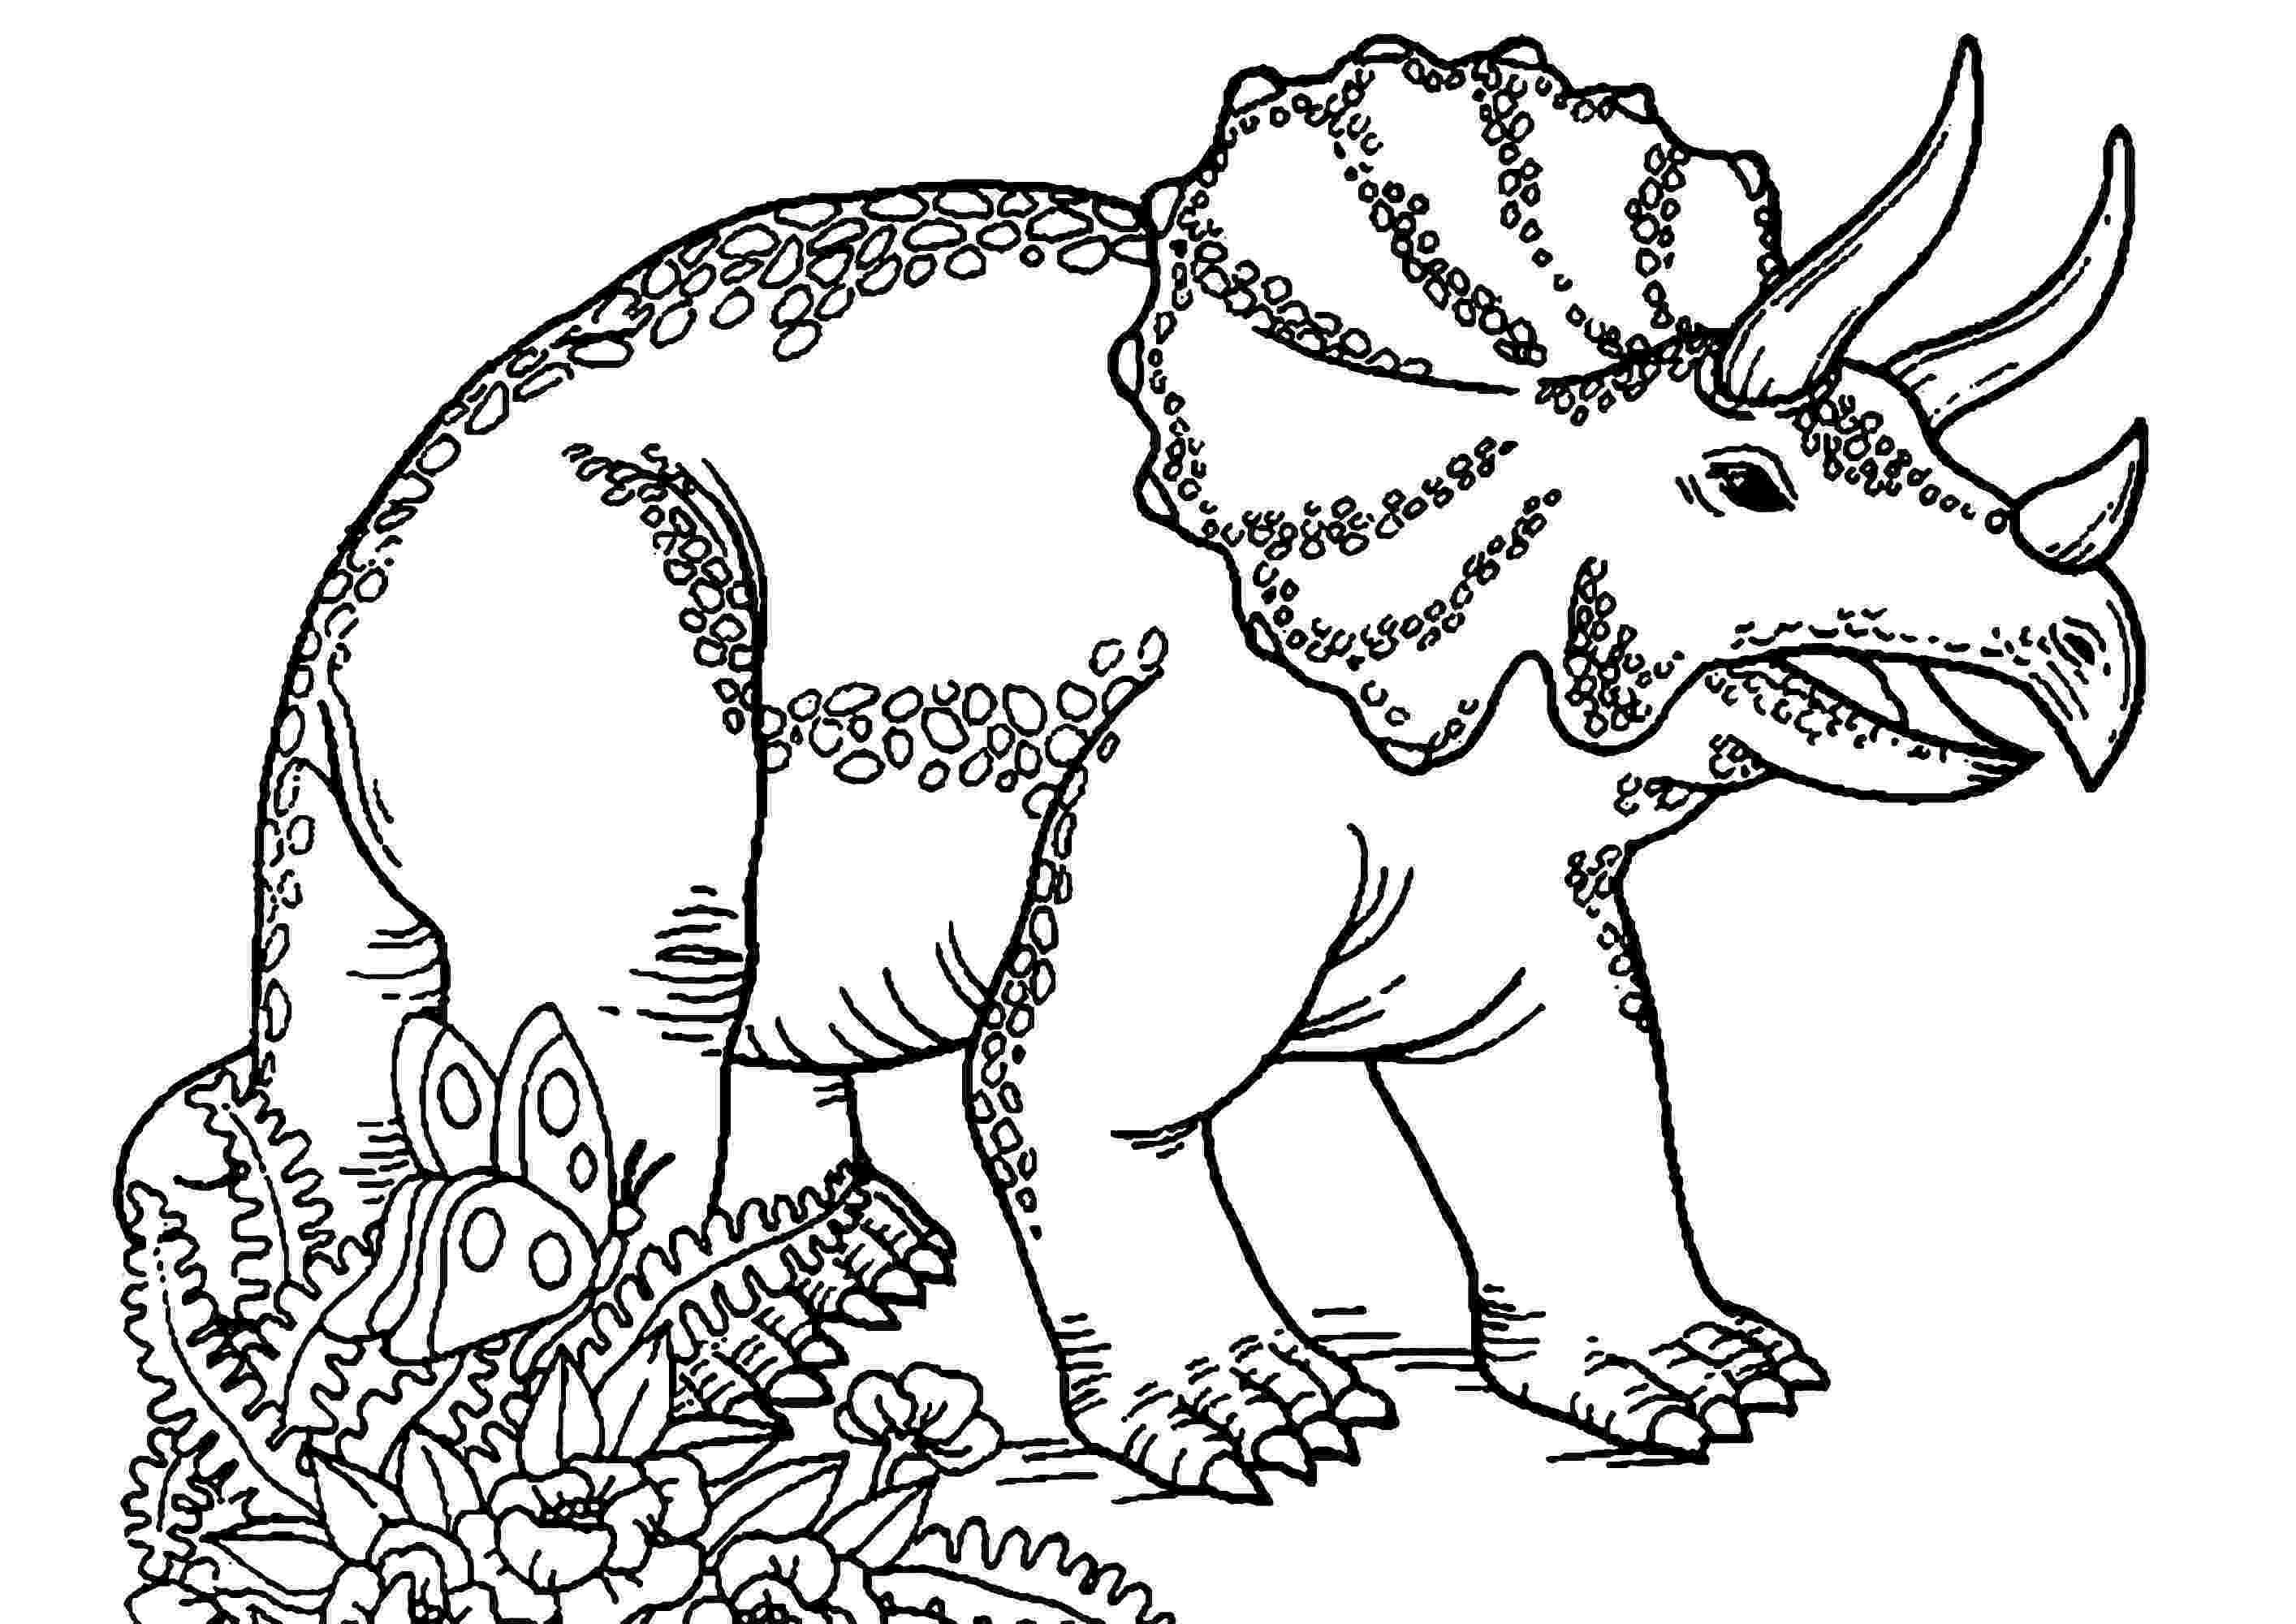 triceratops pictures to color dinosaurs to print triceratops dinosaurs kids coloring pictures to triceratops color